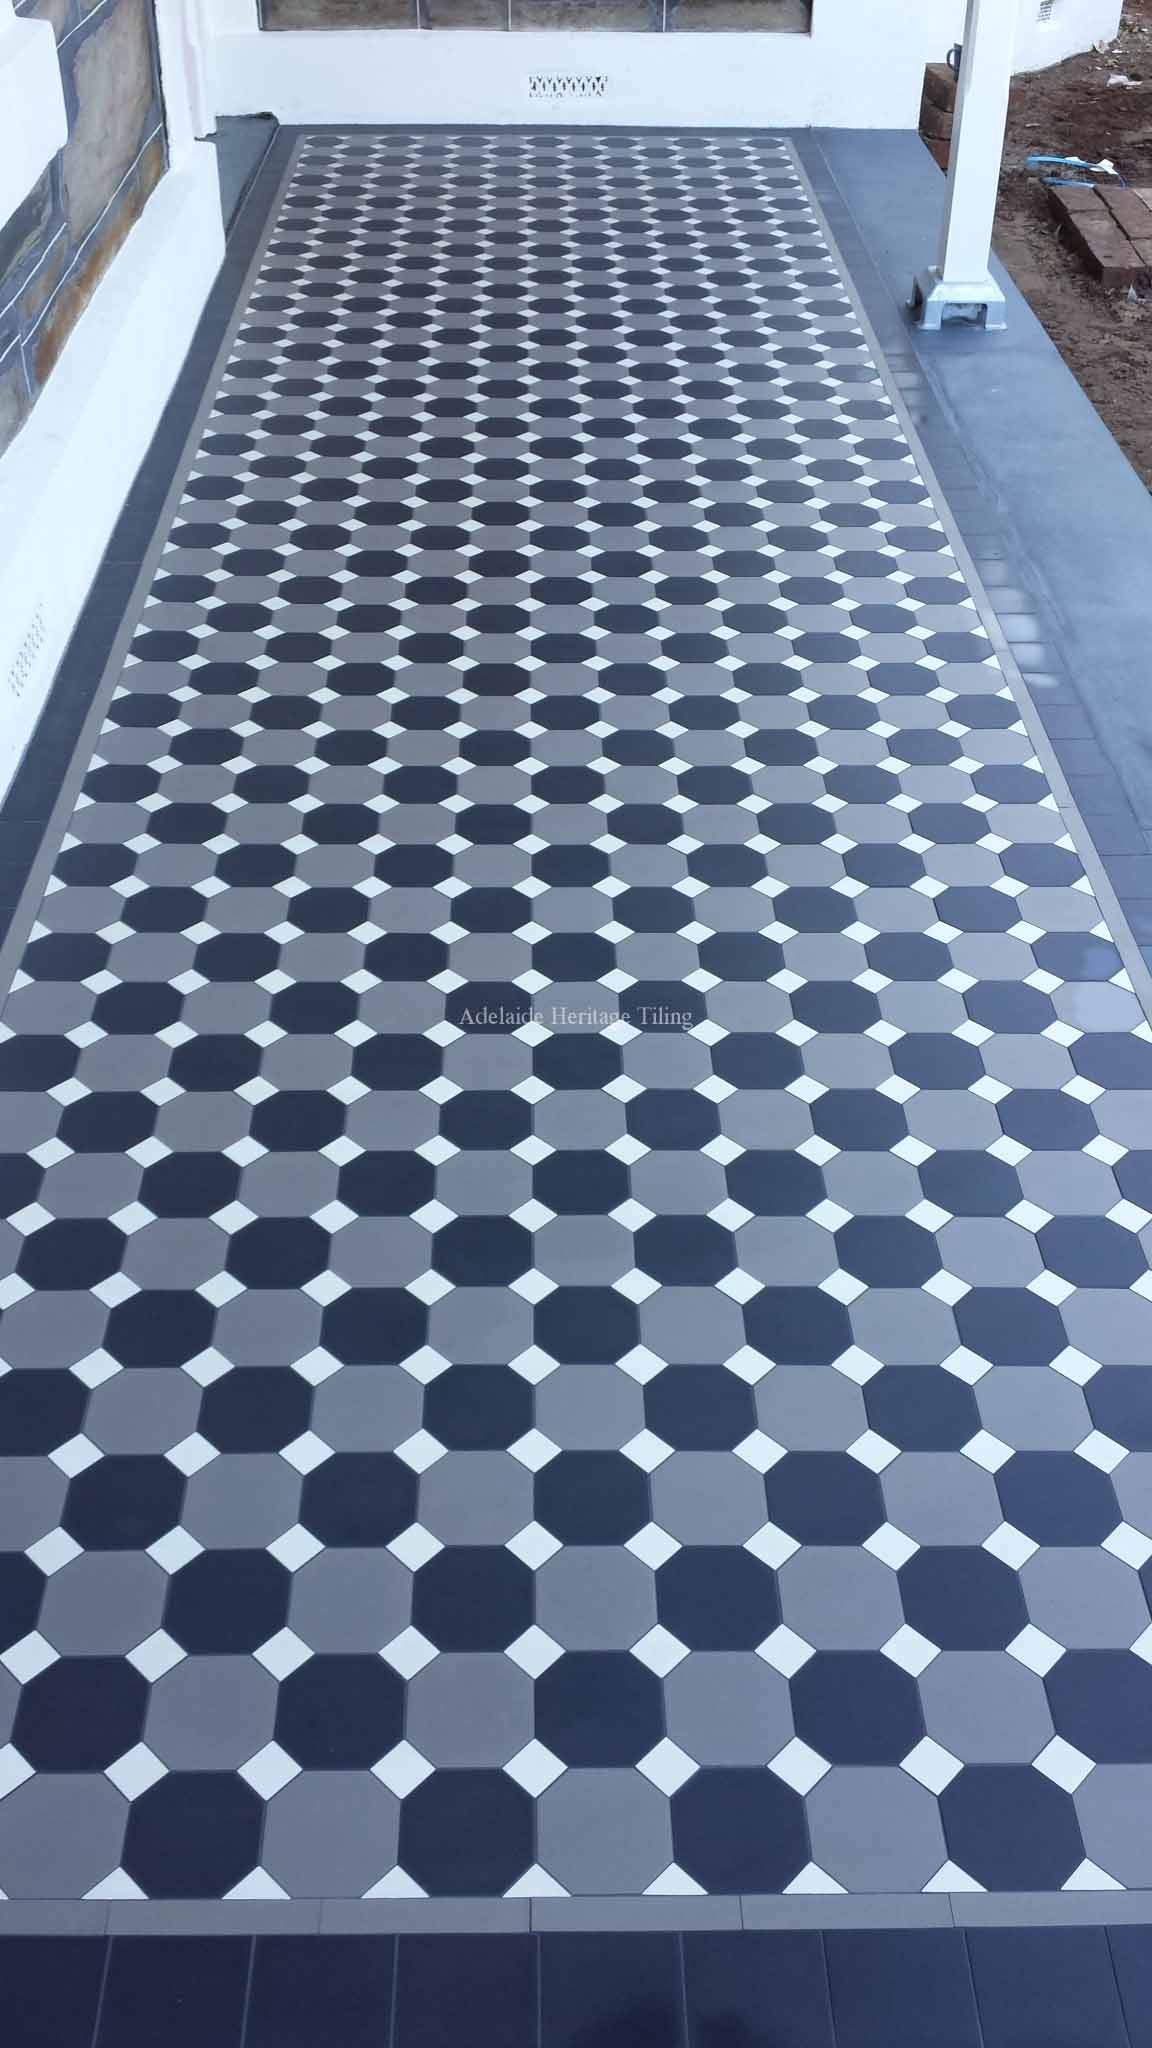 Alternating Black and Grey Octagons with Oatmeal Dots, filler tile border, Mintaro Slate Edging